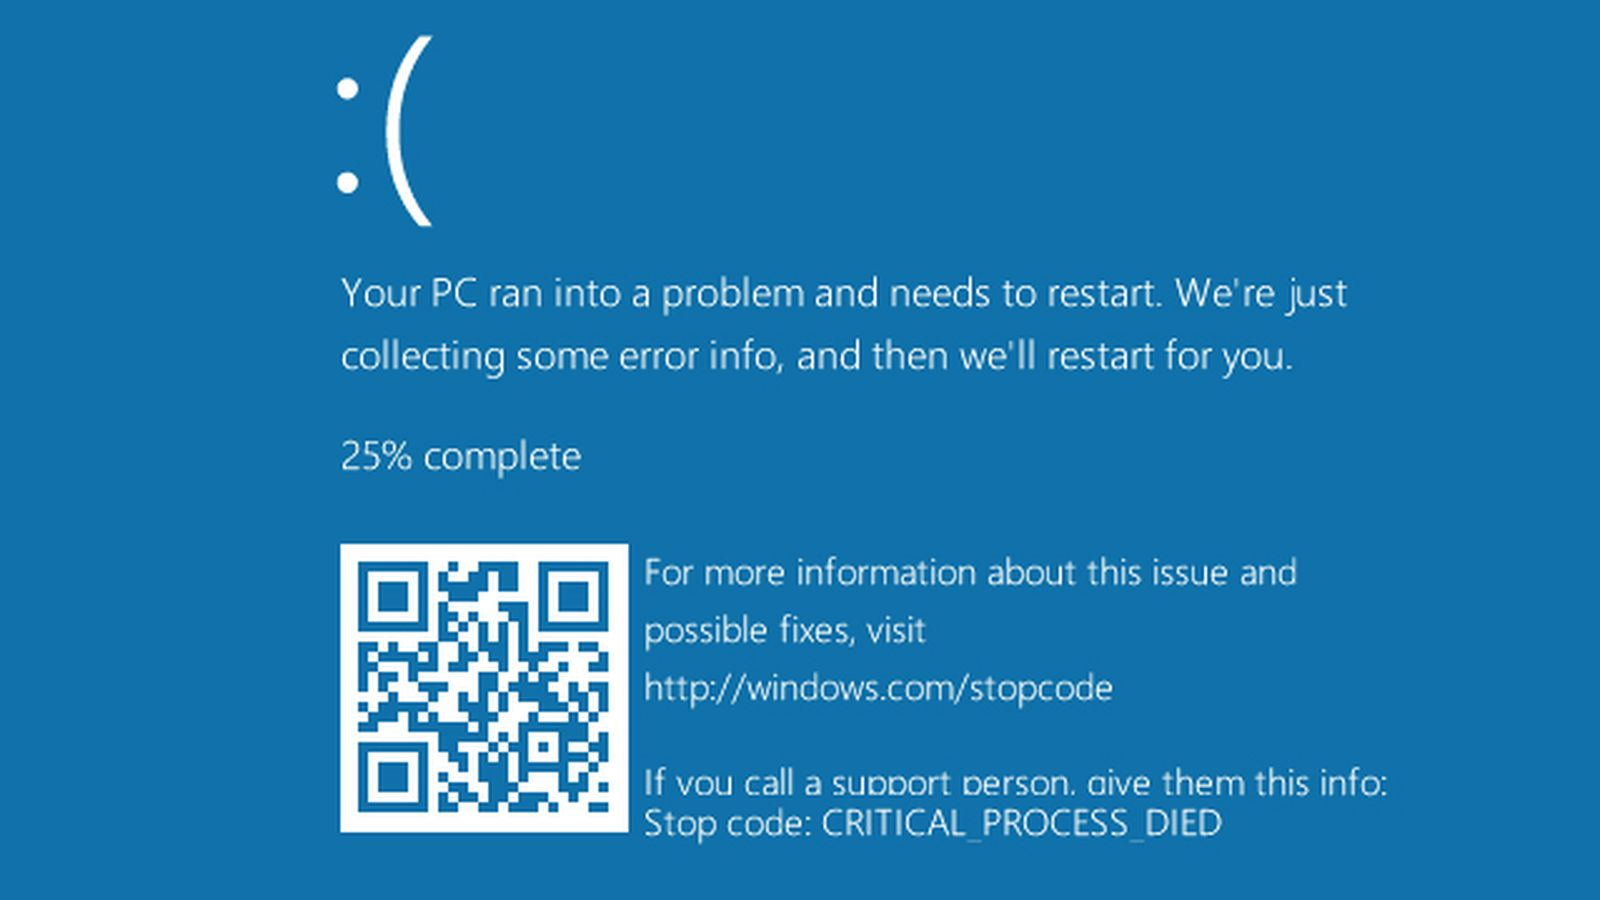 Quote Wallpaper Drive Microsoft Adds Qr Codes To The Windows 10 Blue Screen Of